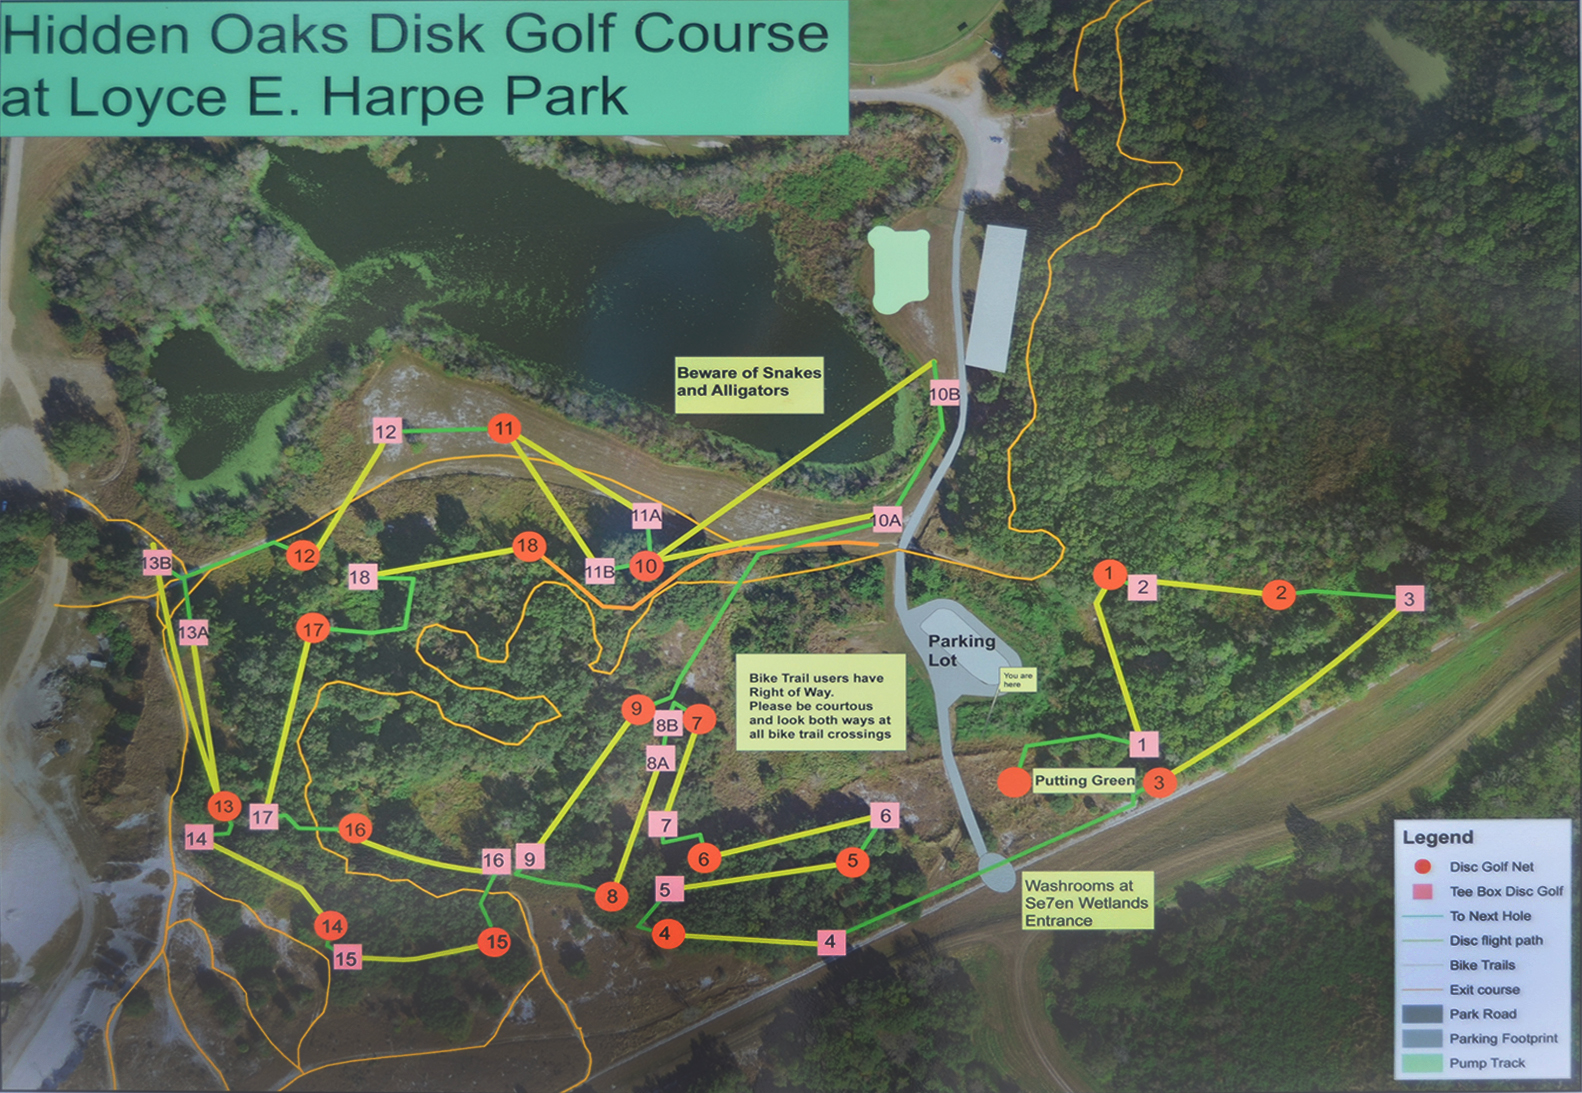 Map for the Loyce E Harpe Hidden Oaks disc golf course